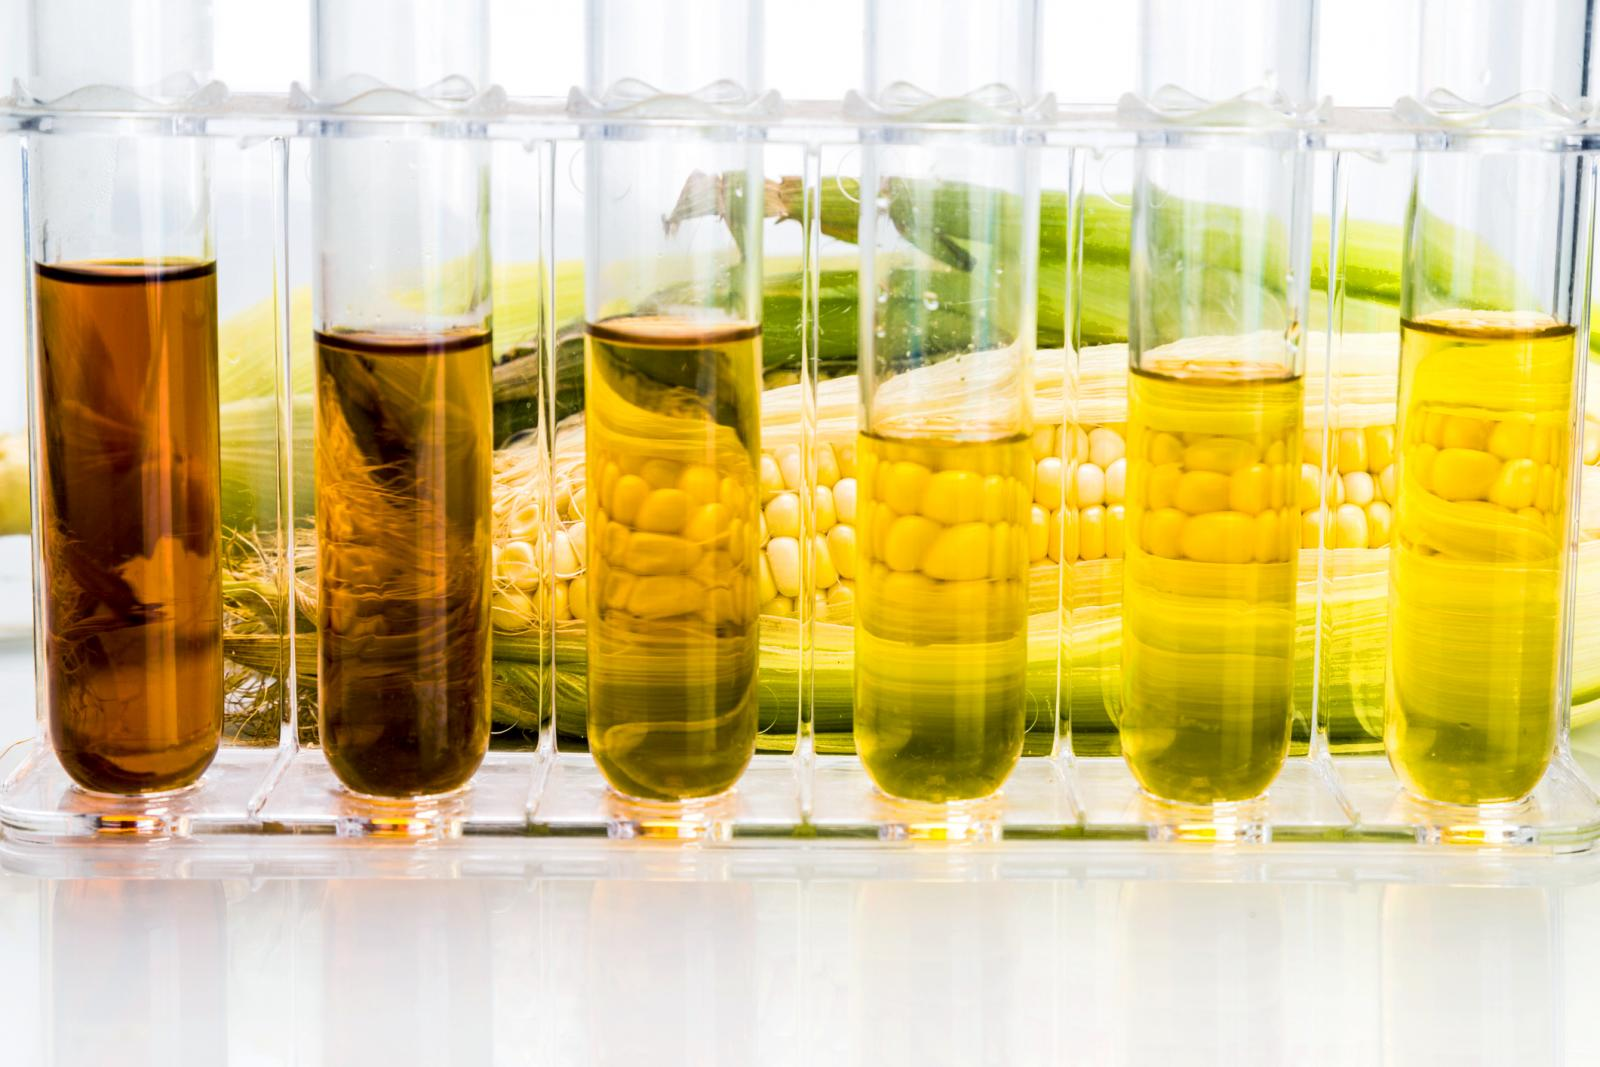 Corn derived ethanol biofuel with test tubes